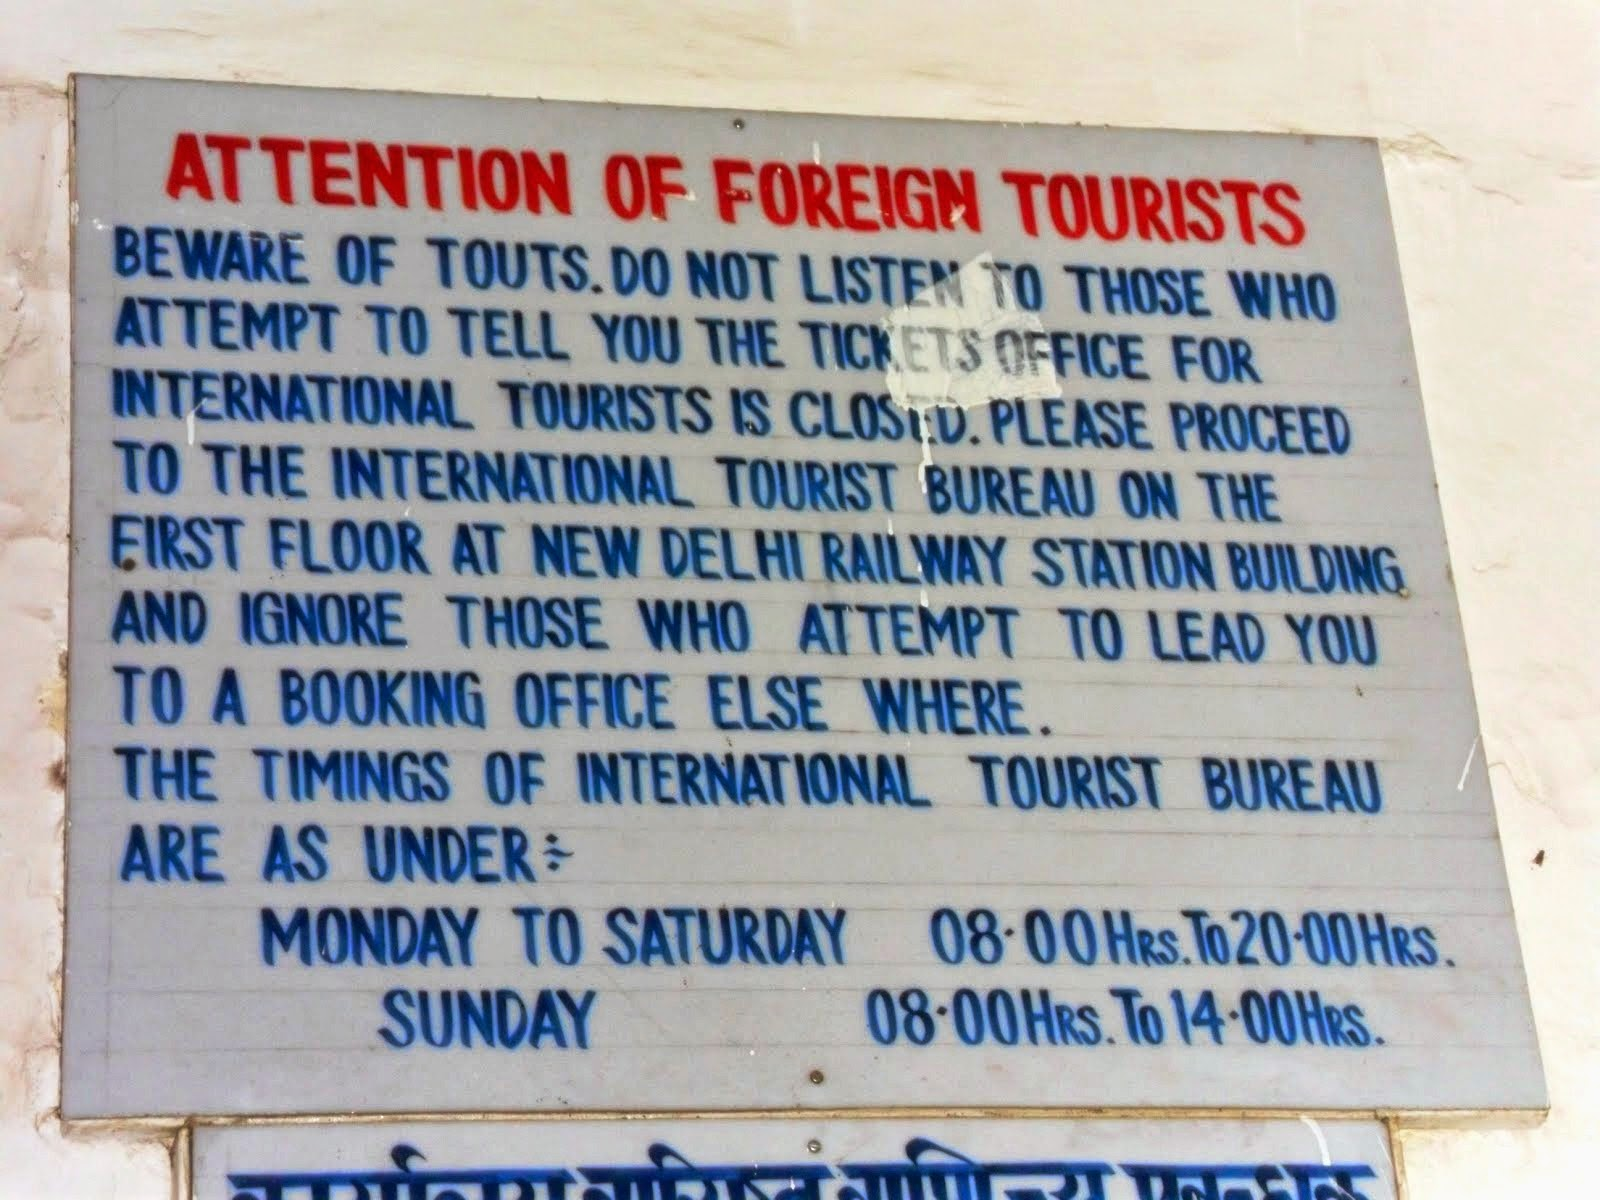 Always check warning signs while traveling in India